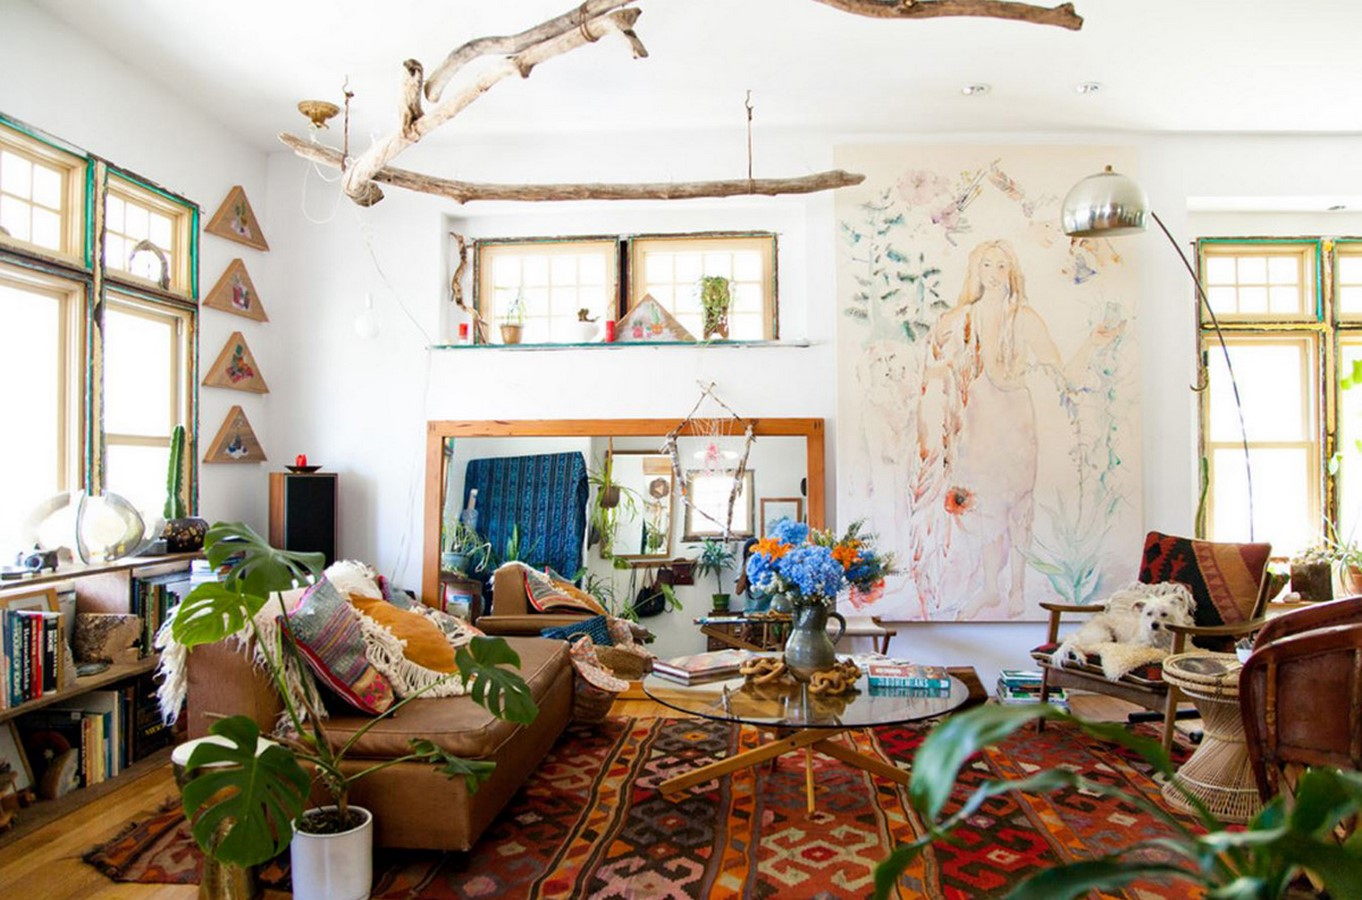 BOHO CHIC WITH ECLECTIC AMBIANCE - Sheet2